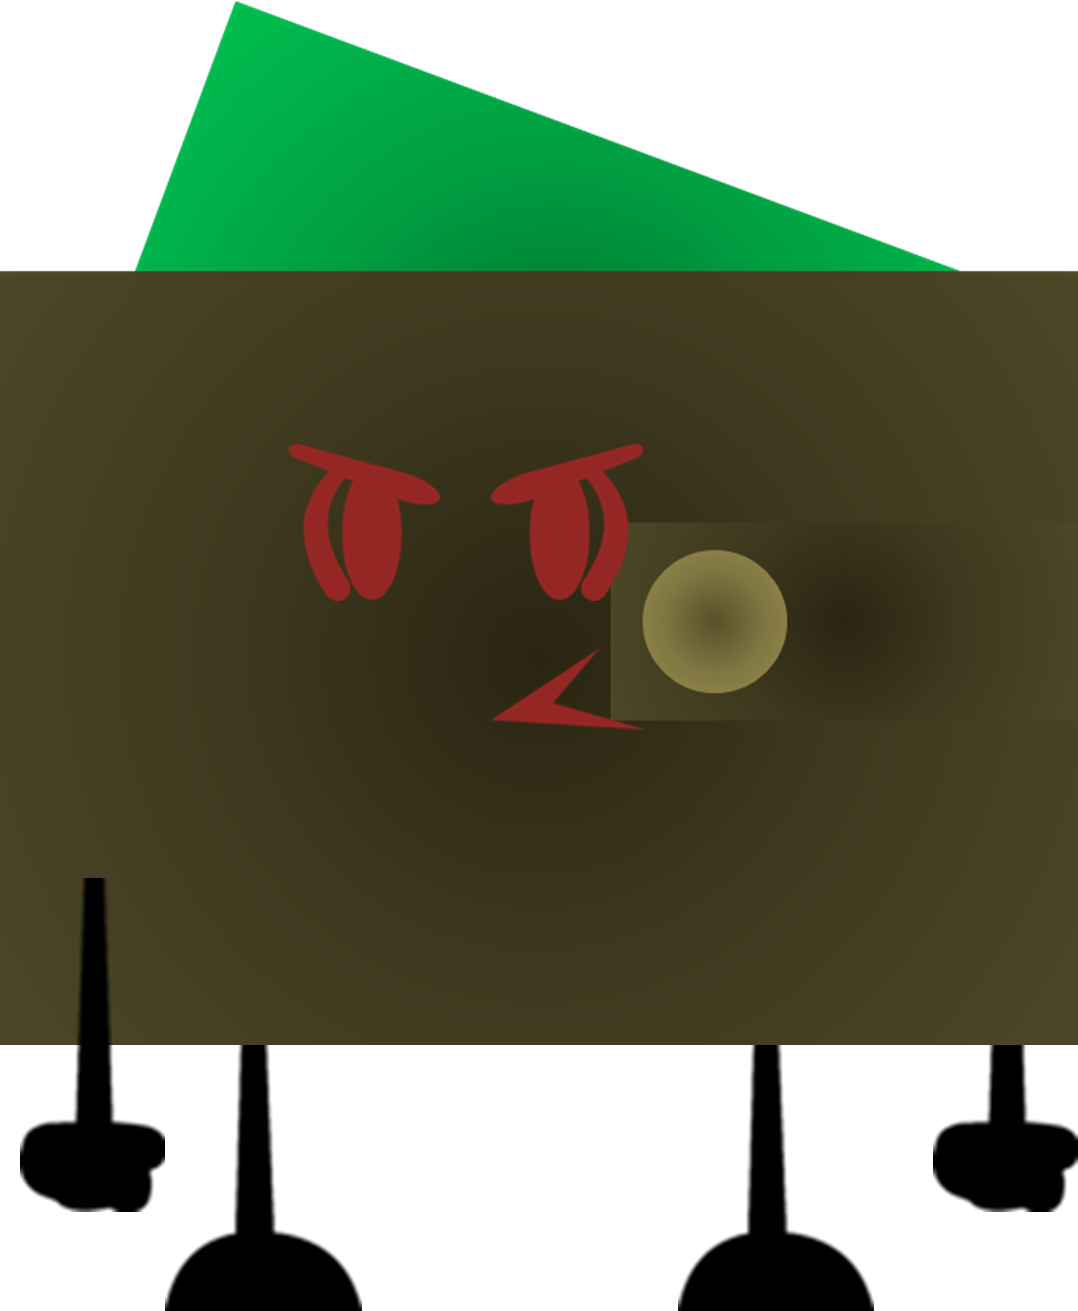 Image m png object. Wallet clipart lost wallet